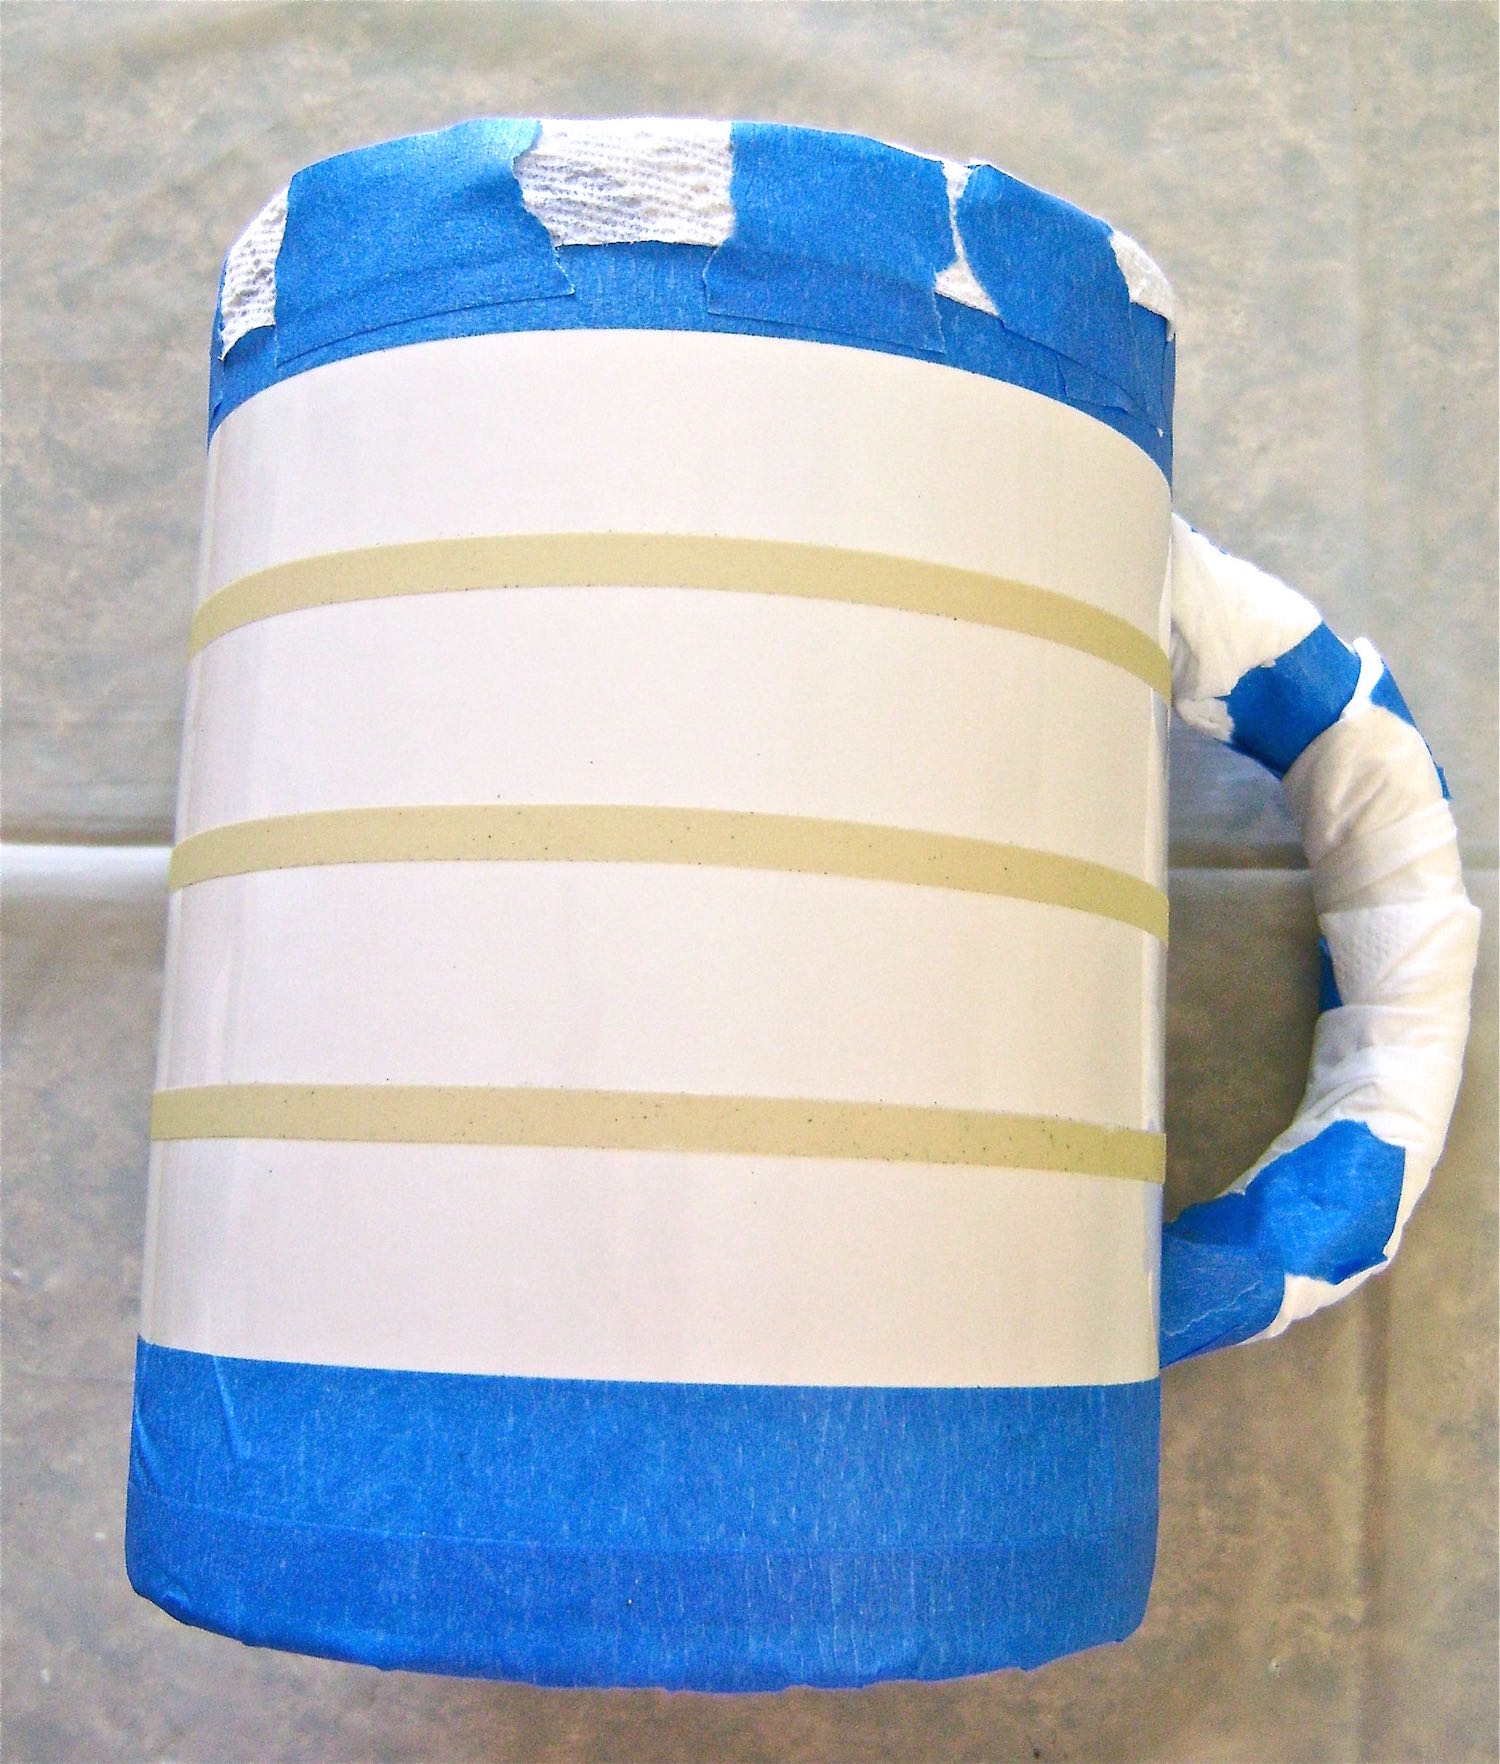 step 5 - Mask the inside of the mug with a paper towel.  Tape the edge of it to the top edge of the mug.  Wrap tissue around the mug handle.